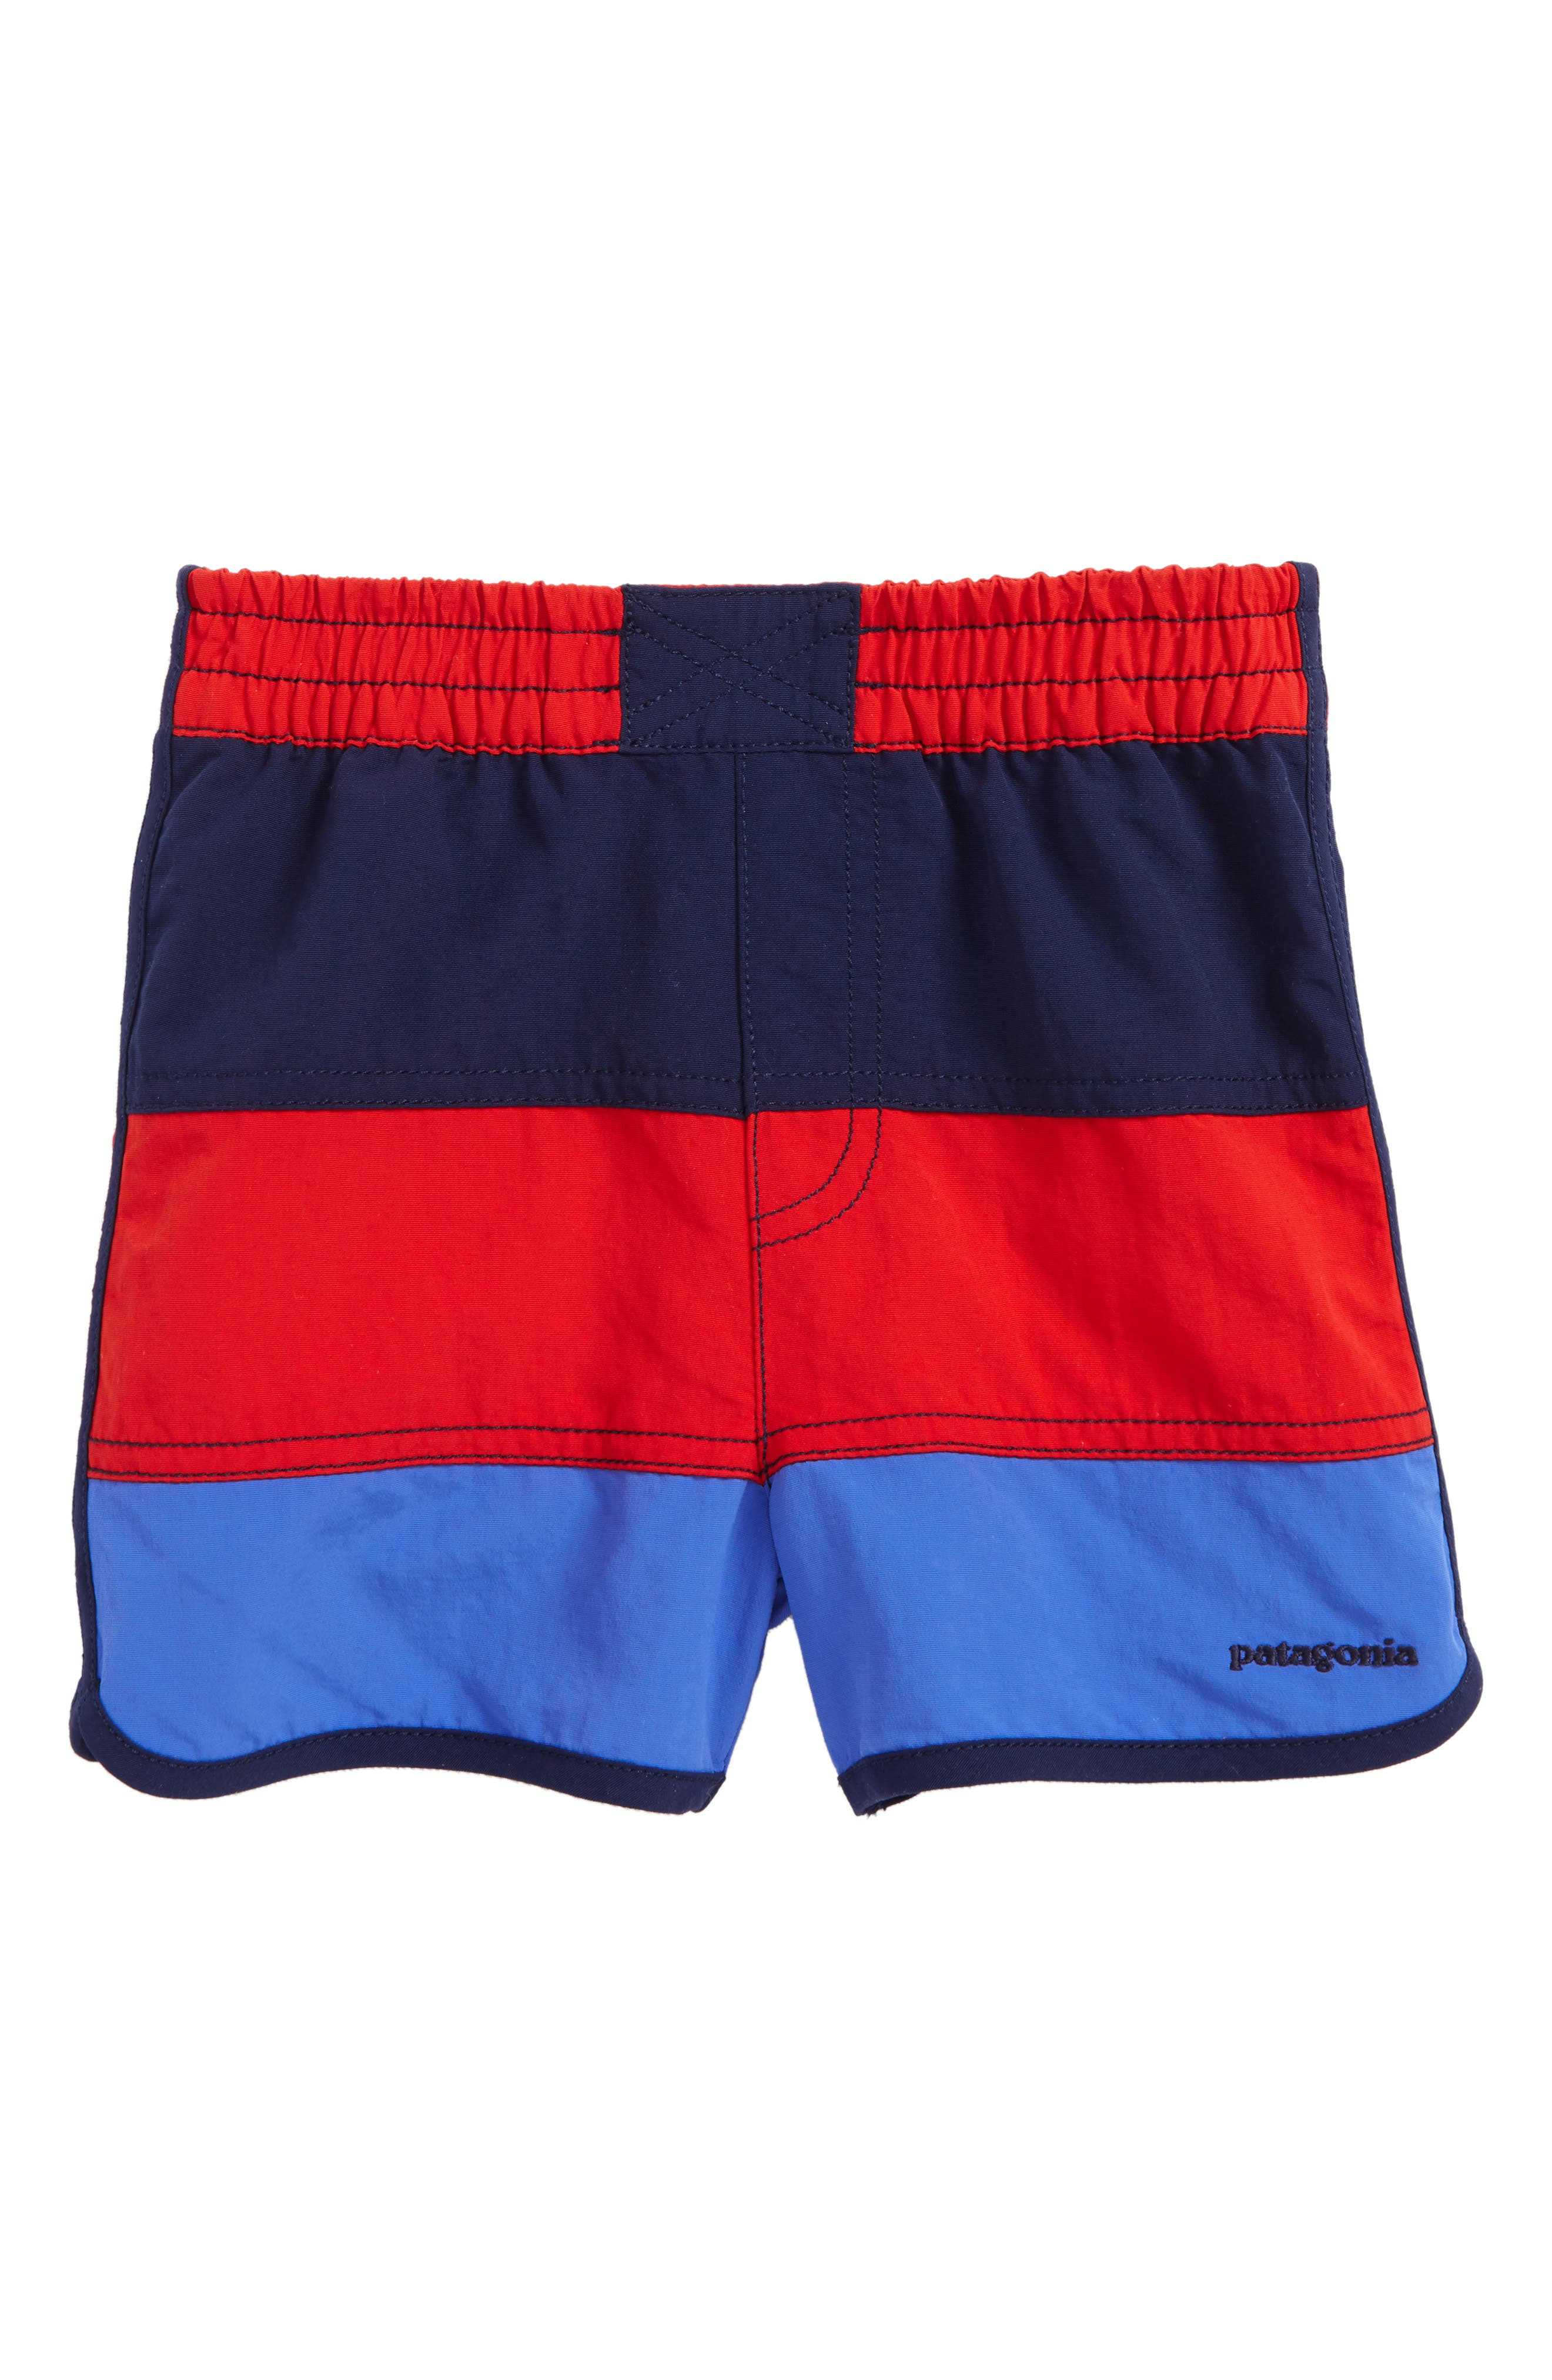 Patagonia Board Shorts (Toddler Boys)